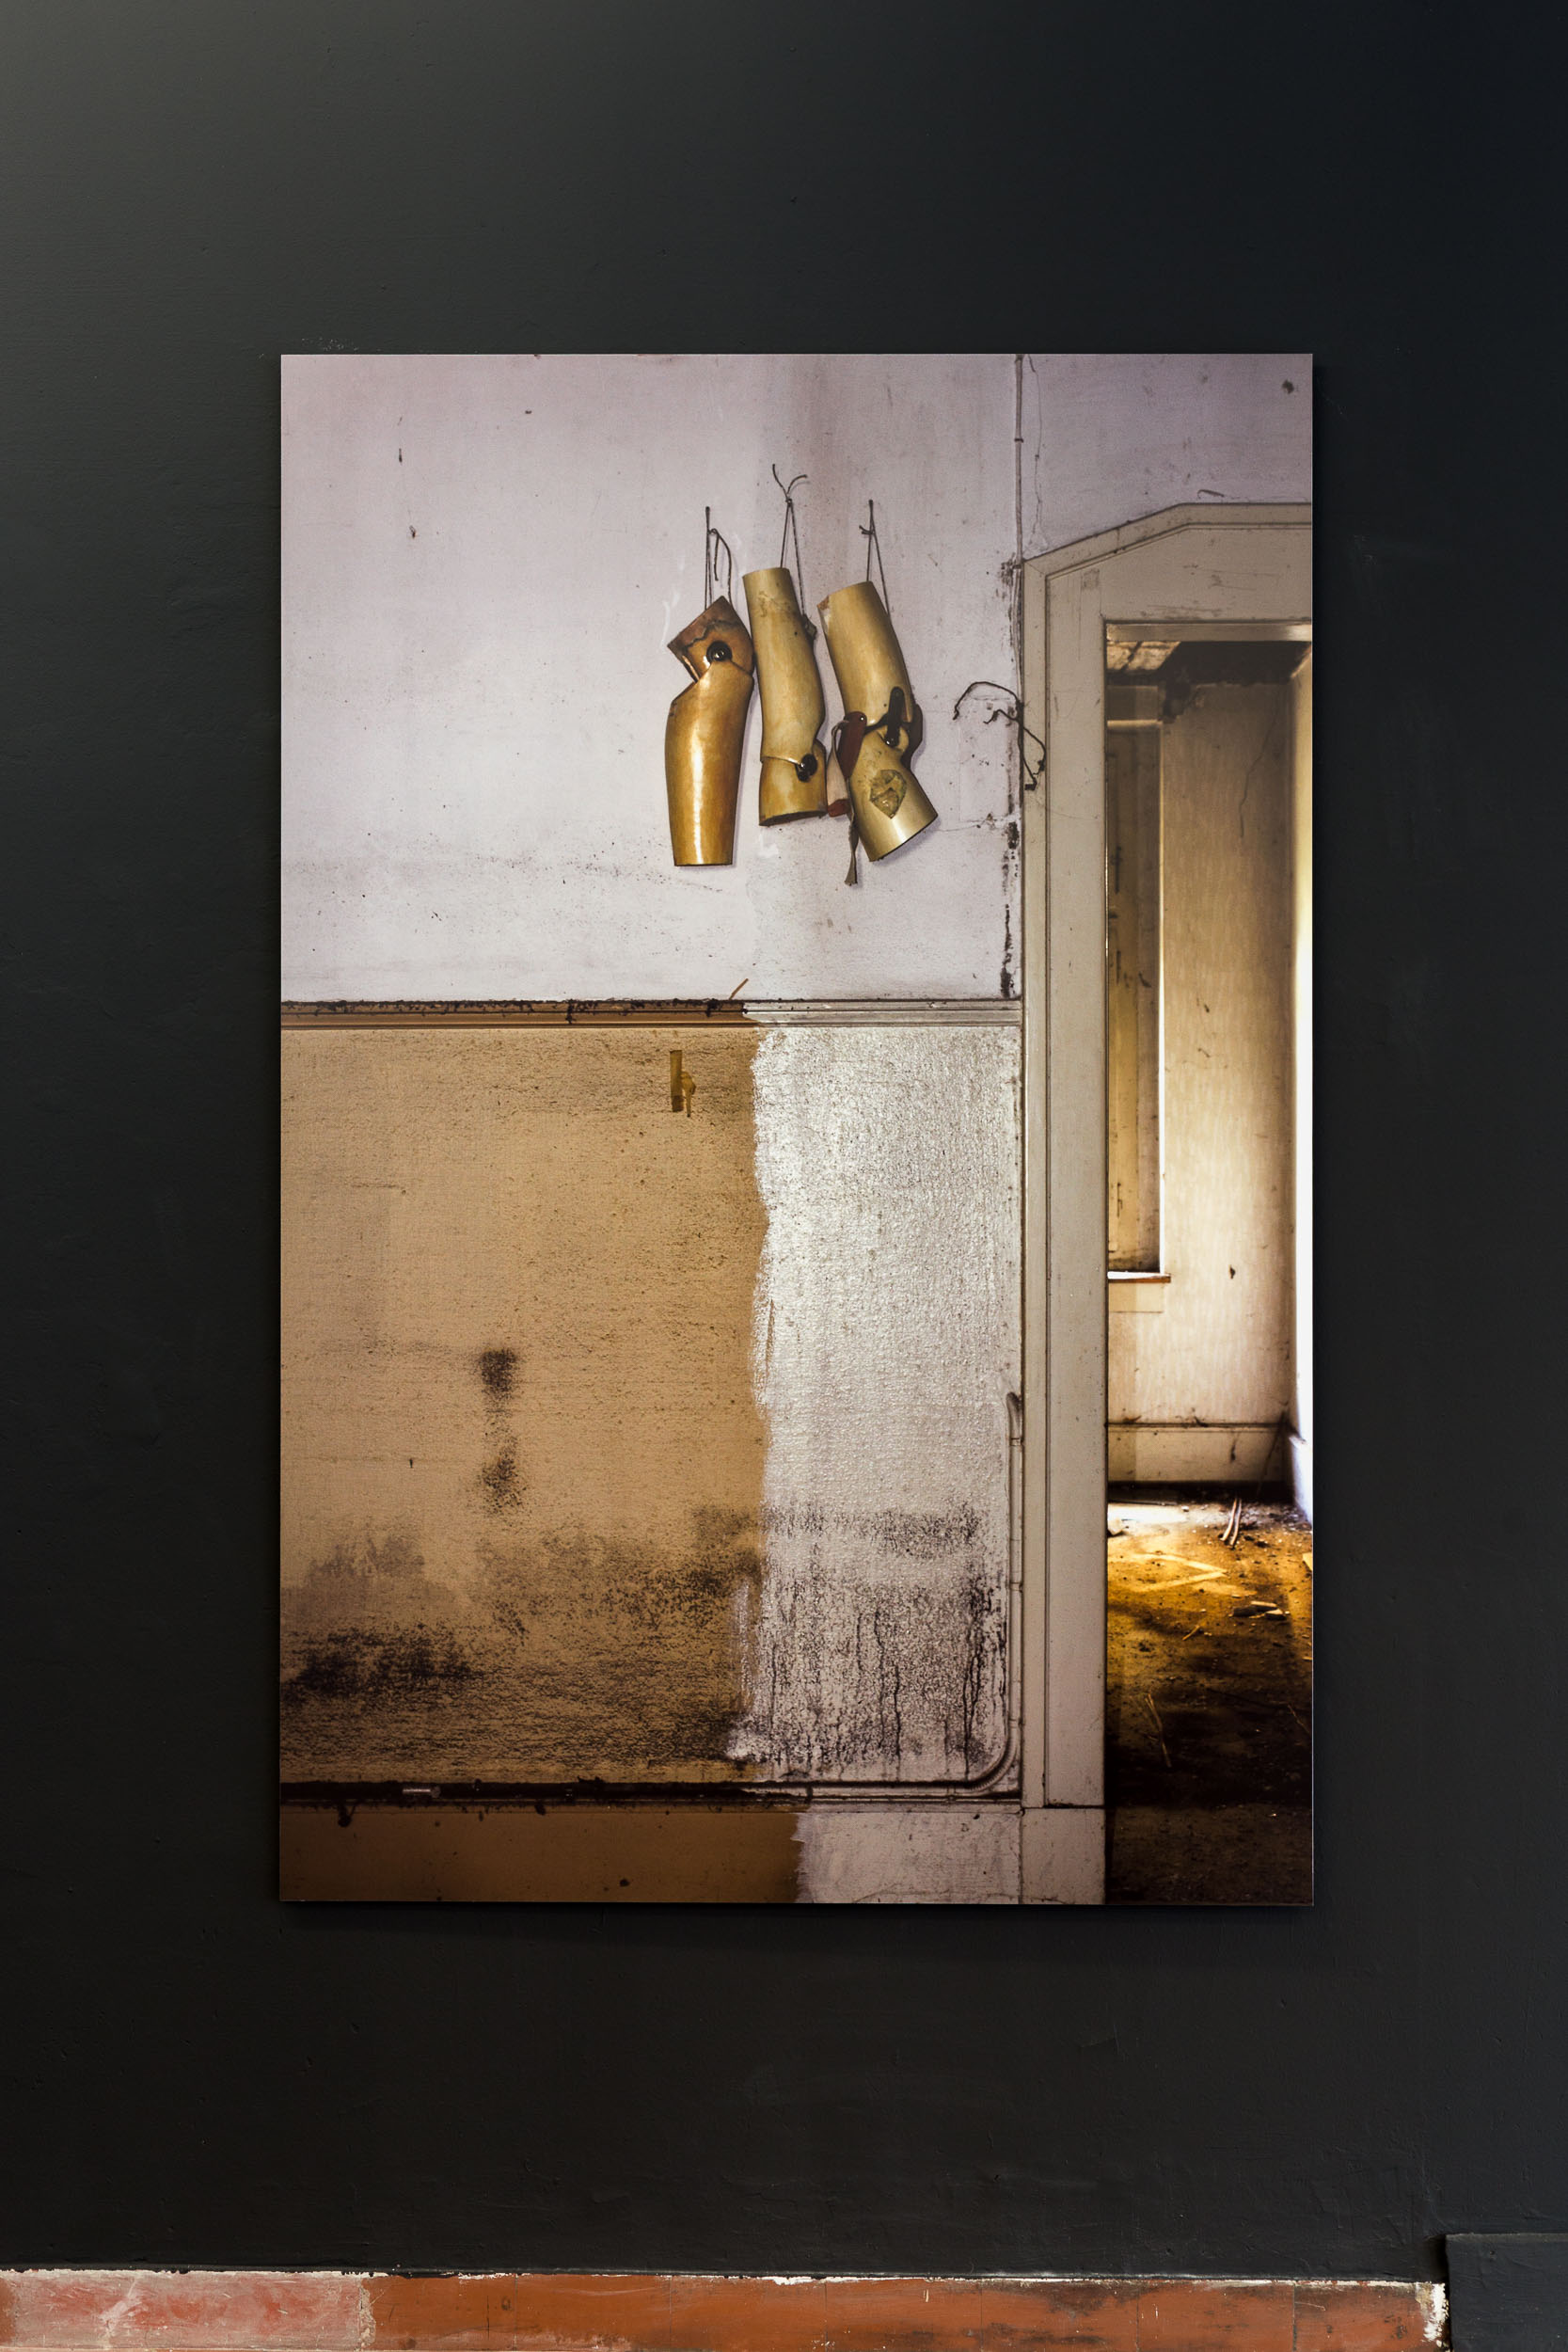 Manon,  Hotel Dolores,  2008-2011, Photoseries with ca. 150 Photographs, C-Prints on Fuji Crystal Archive Paper mounted on Aluminium, 189 x 126cm  Photo: Kilian Bannwart